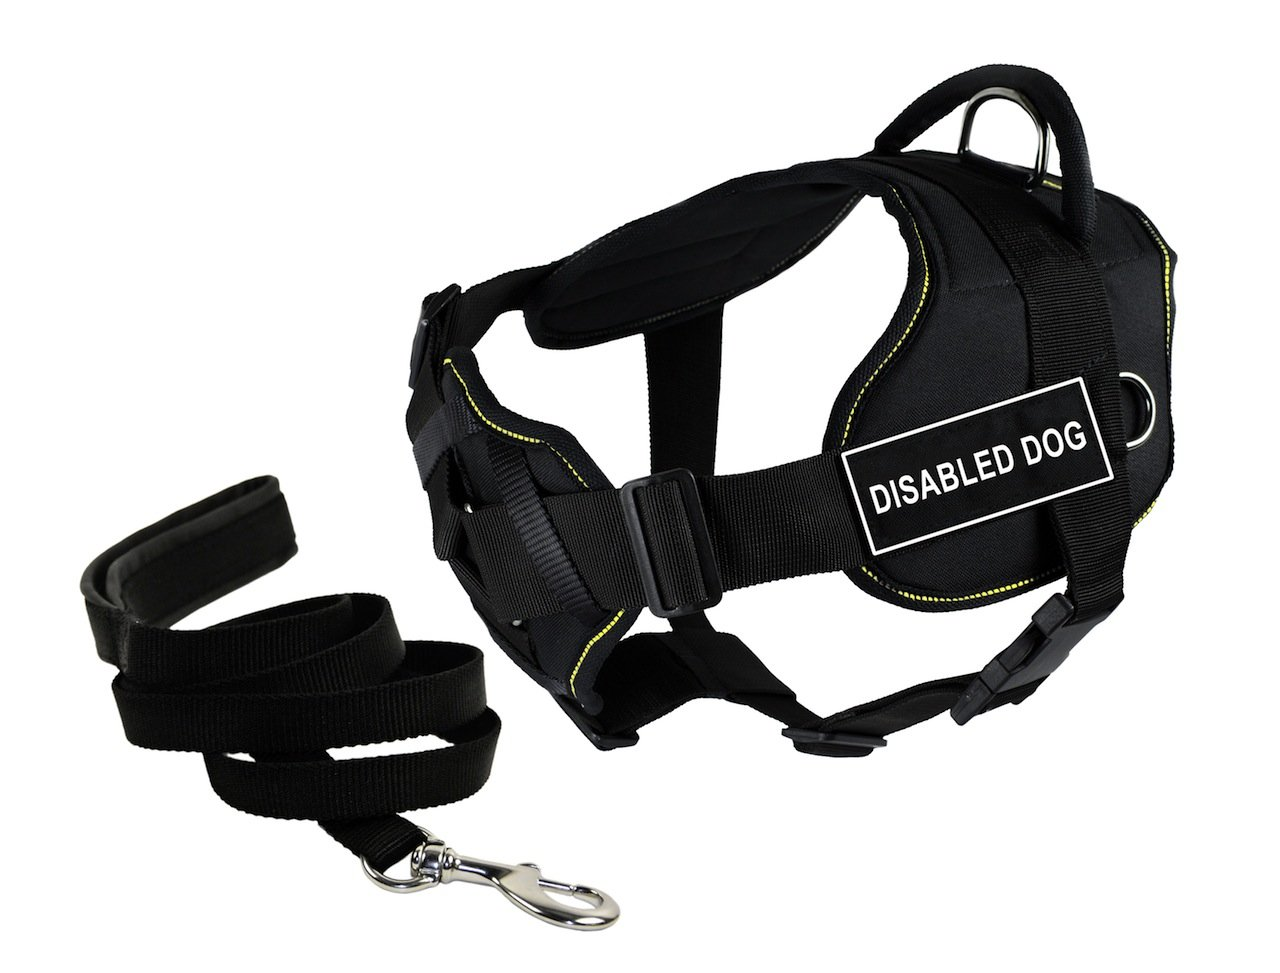 Dean & Tyler's DT Fun Chest Support DISABLED DOG Harness, Small, with 6 ft Padded Puppy Leash.